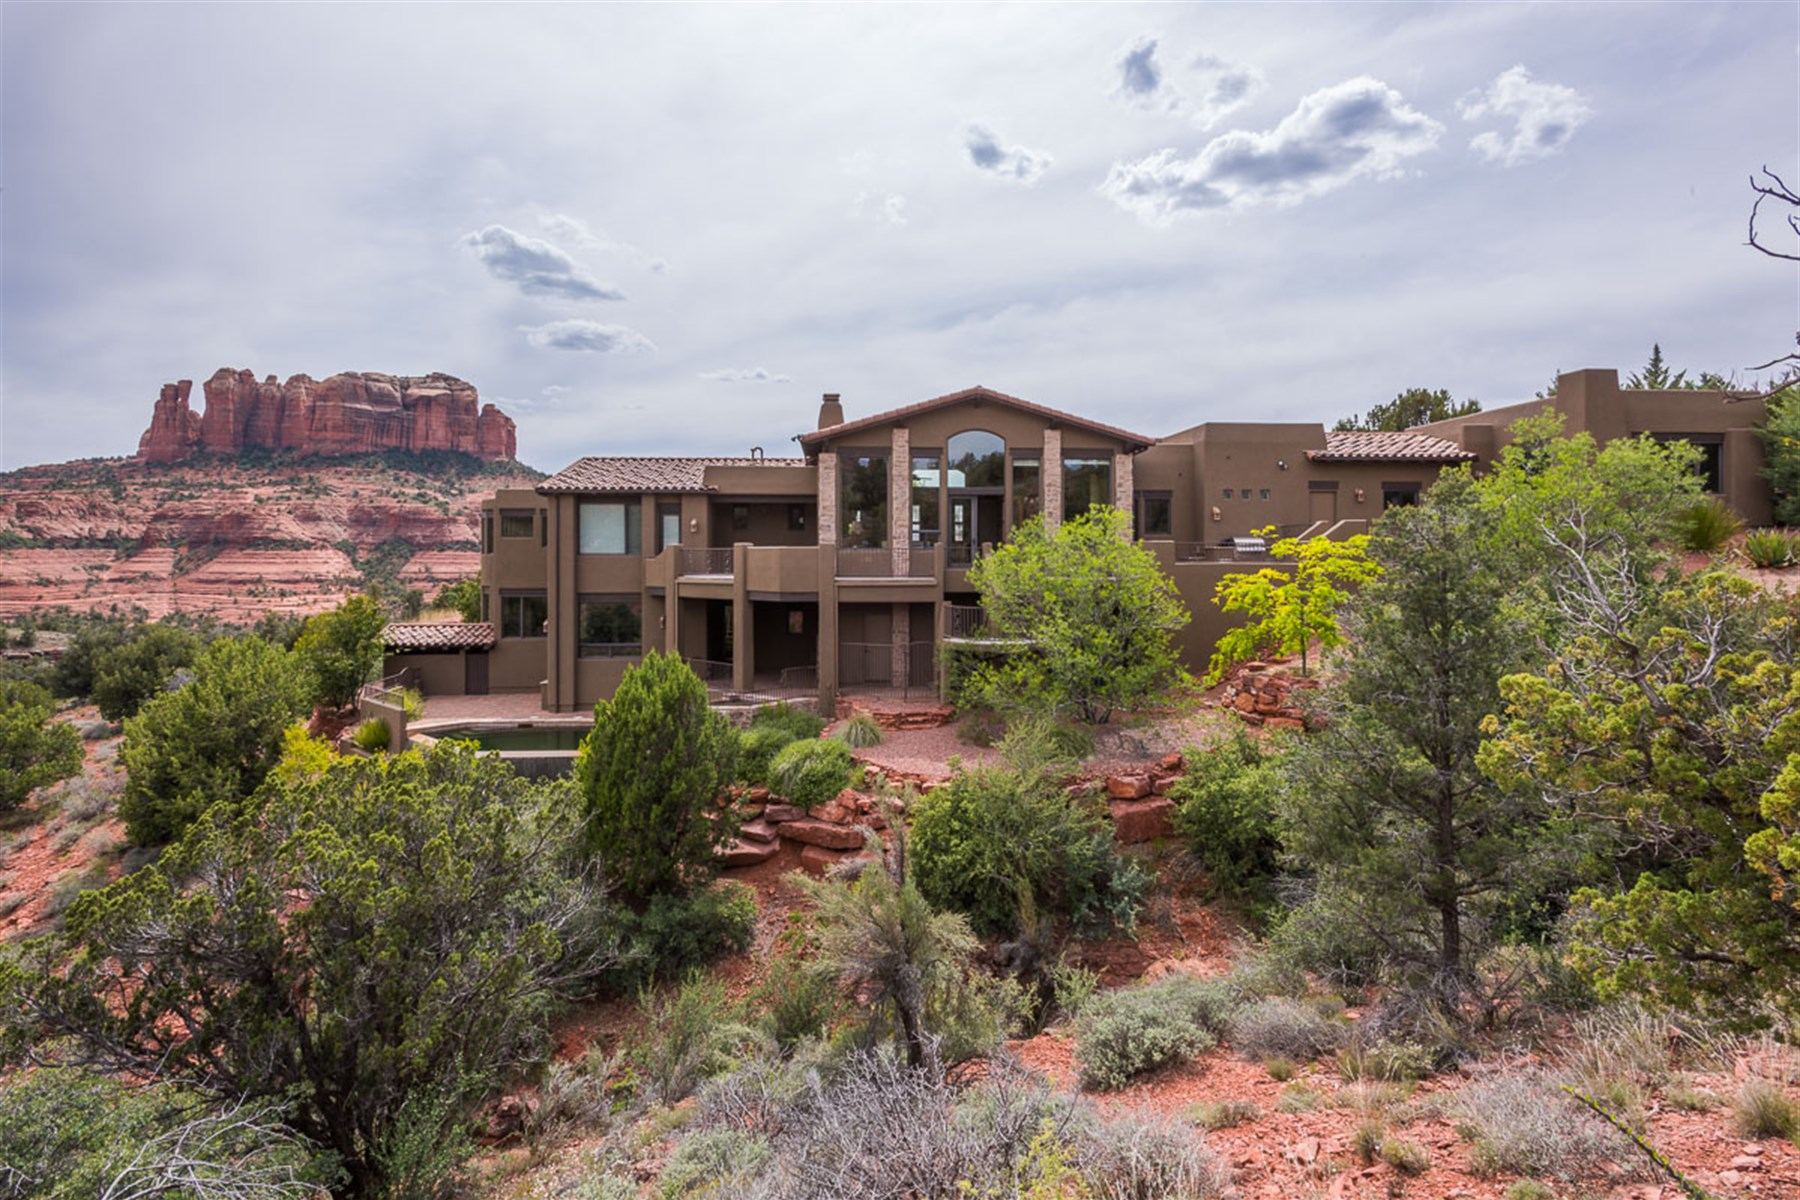 獨棟家庭住宅 為 出售 在 Sante Fe luxury home sits elevated in this magical environment of Back O' Beyond 15 ROSEMARY CT Sedona, 亞利桑那州, 86336 美國